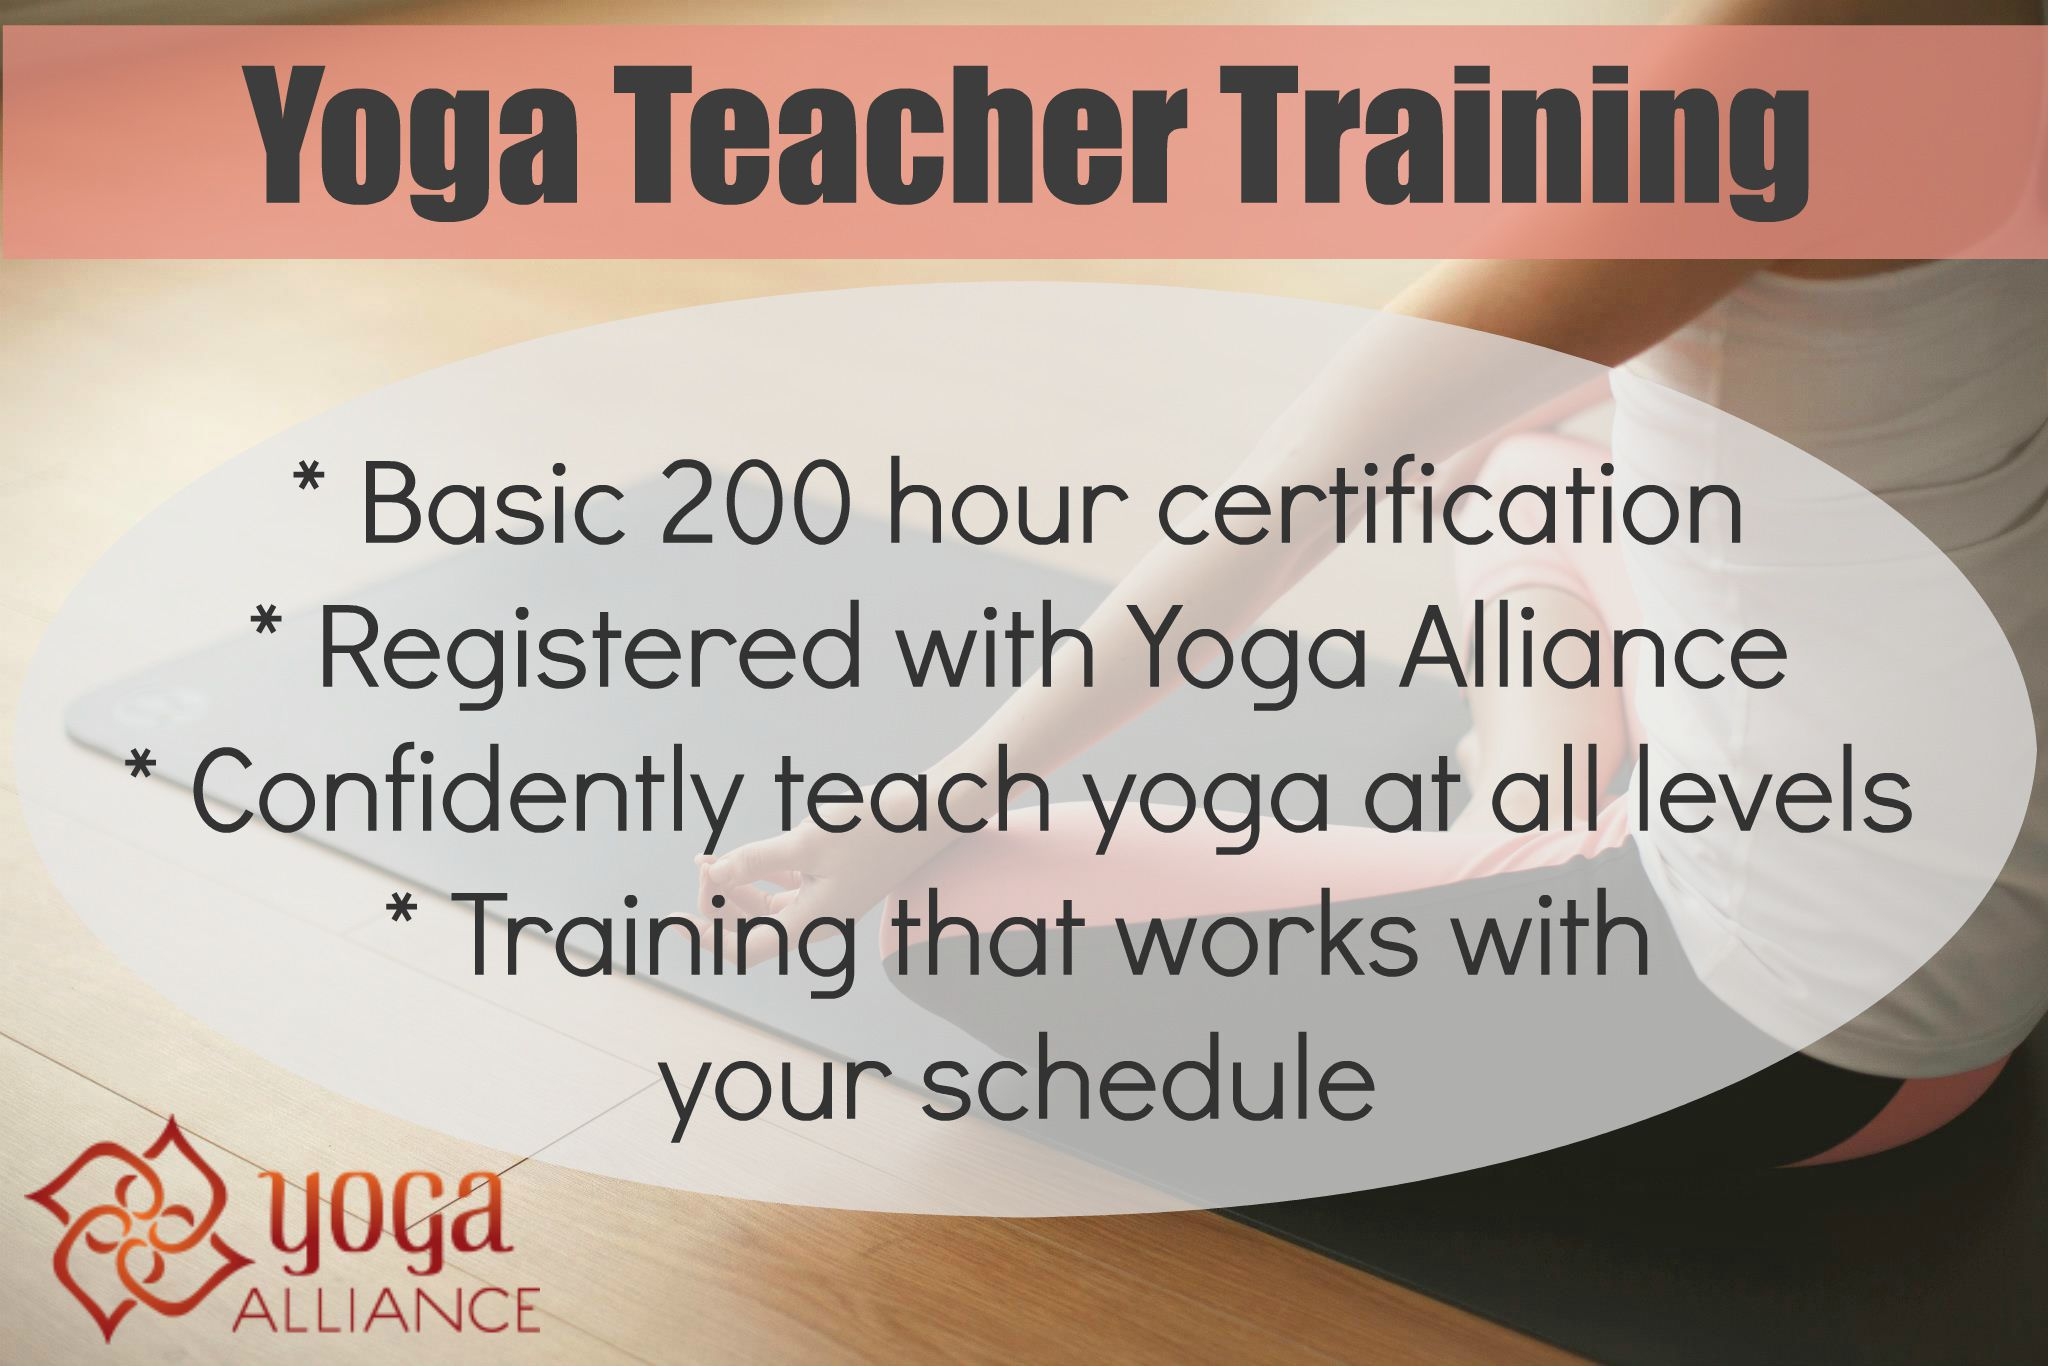 Yoga Teacher Training - webpage2